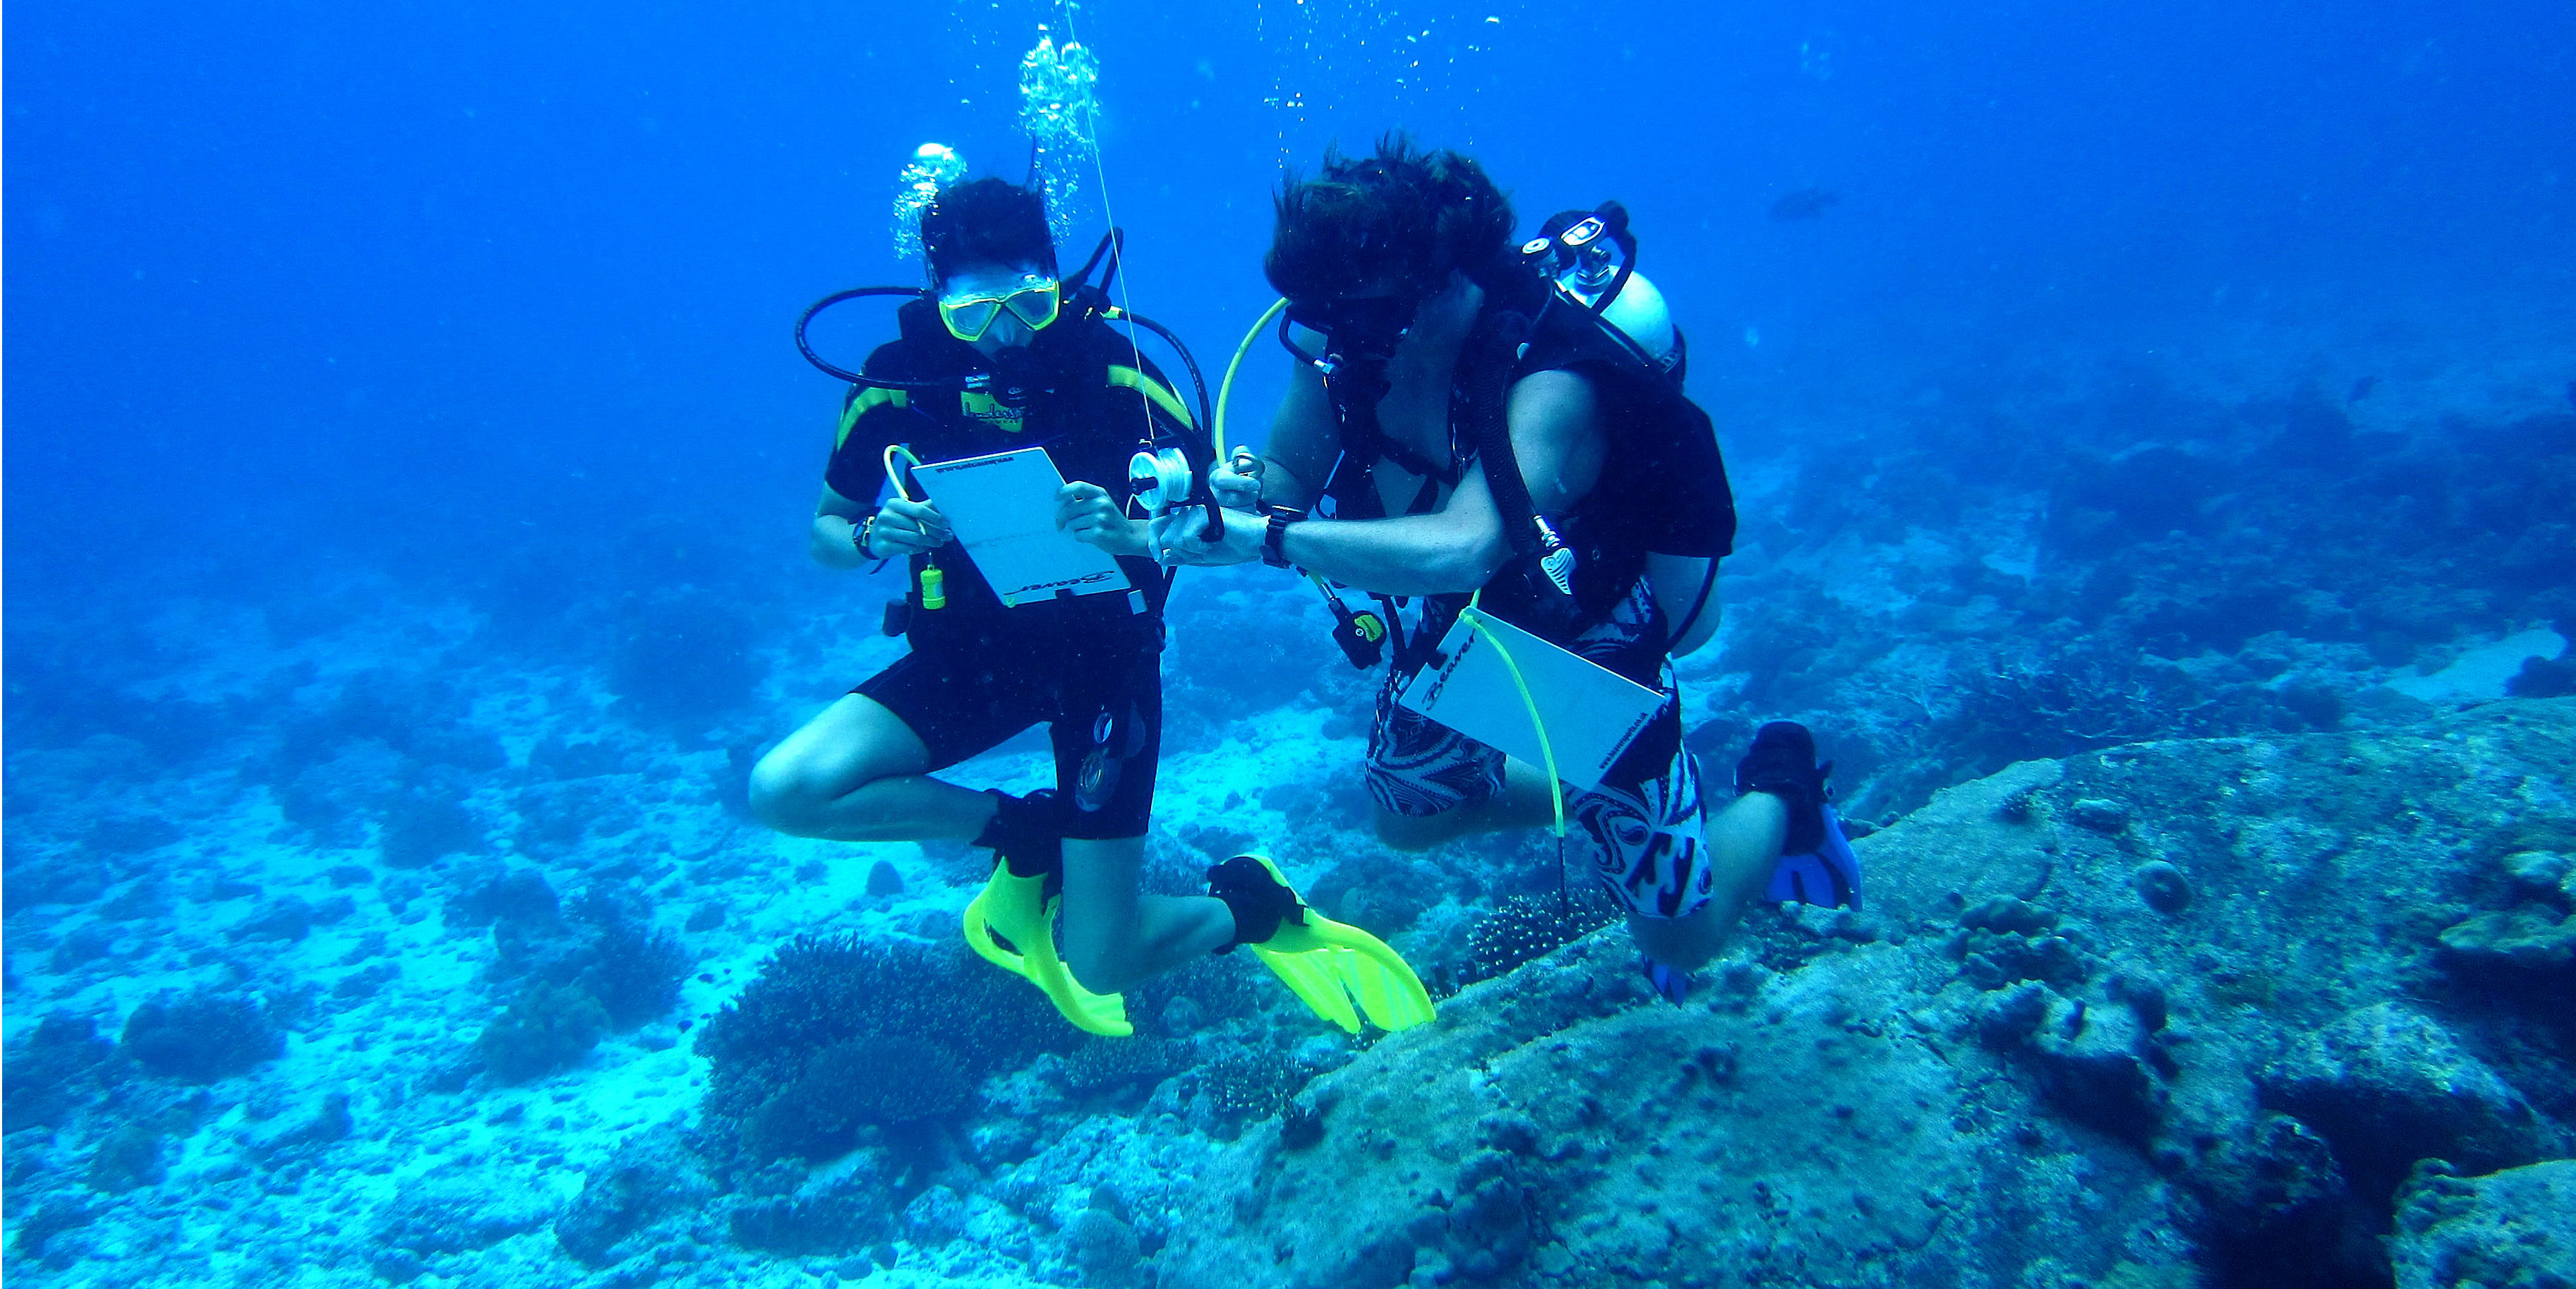 GVI participants help to gather scientific data in Mahe, Seychelles. After becoming PADI pros, these divers could help further research in marine conservation.